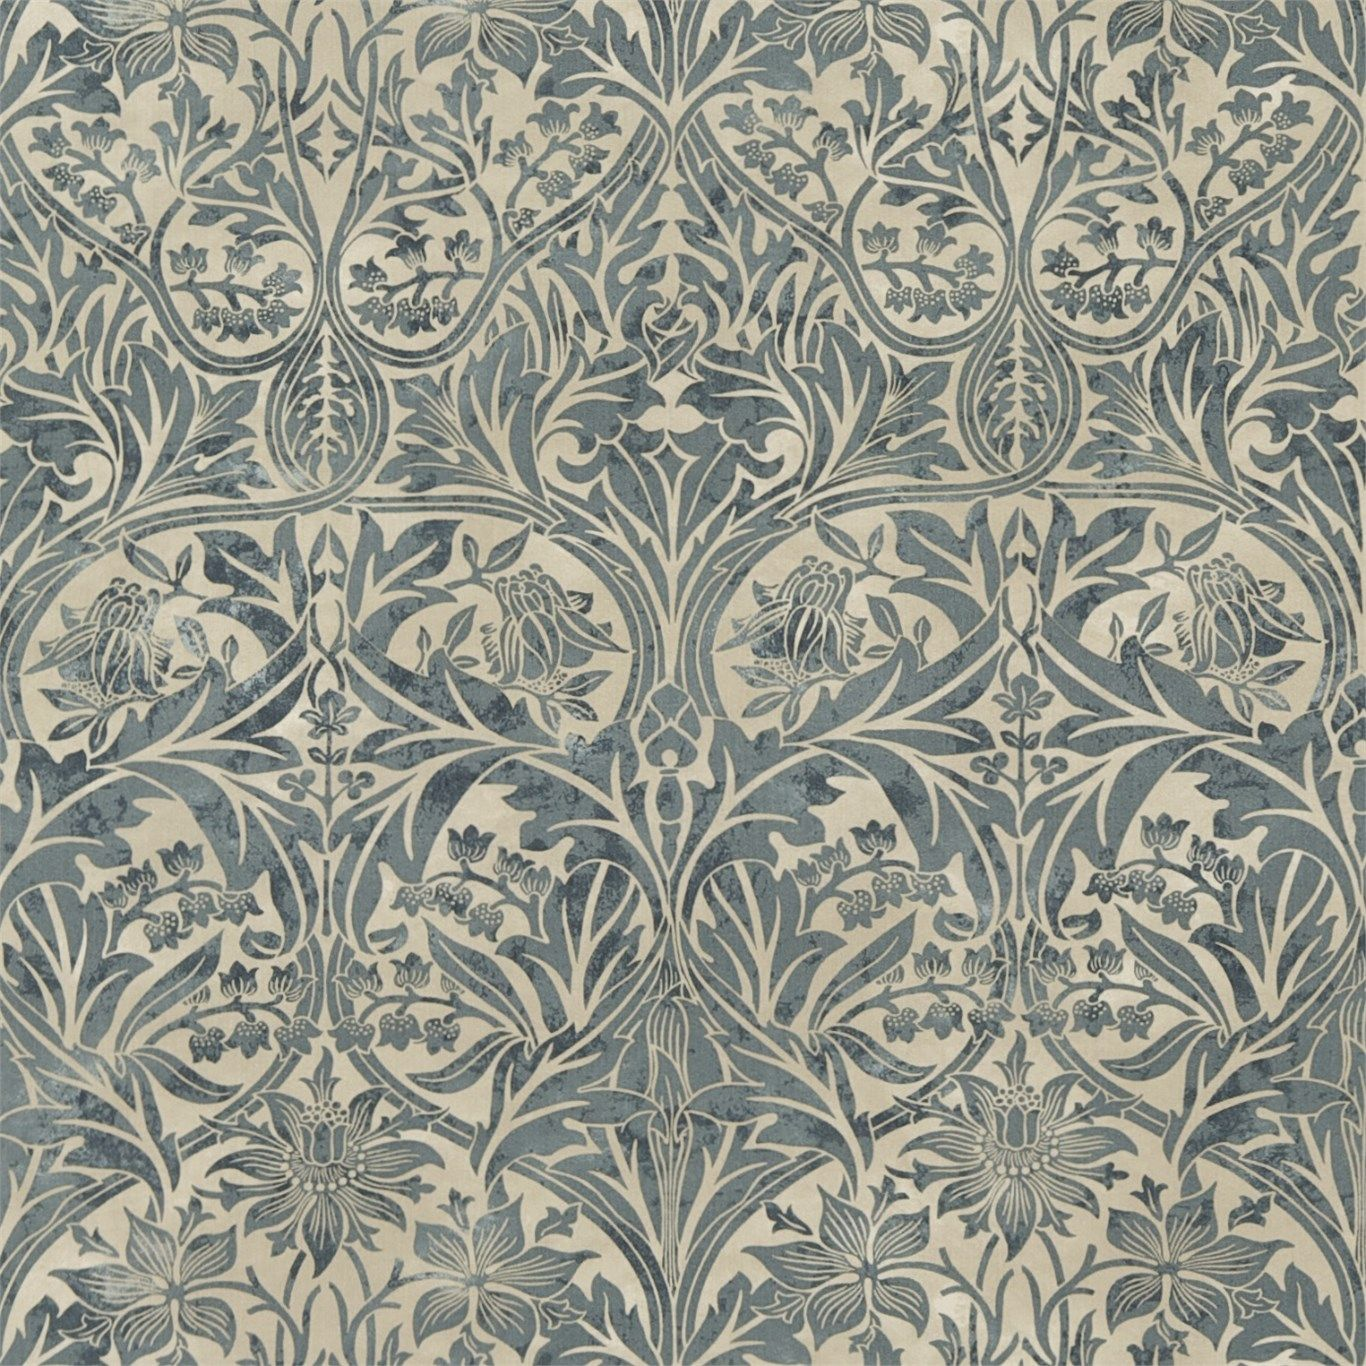 Style Library The Premier Destination For Stylish And Quality British Design Products Bluebell William Morris Wallpaper Morris Wallpapers William Morris